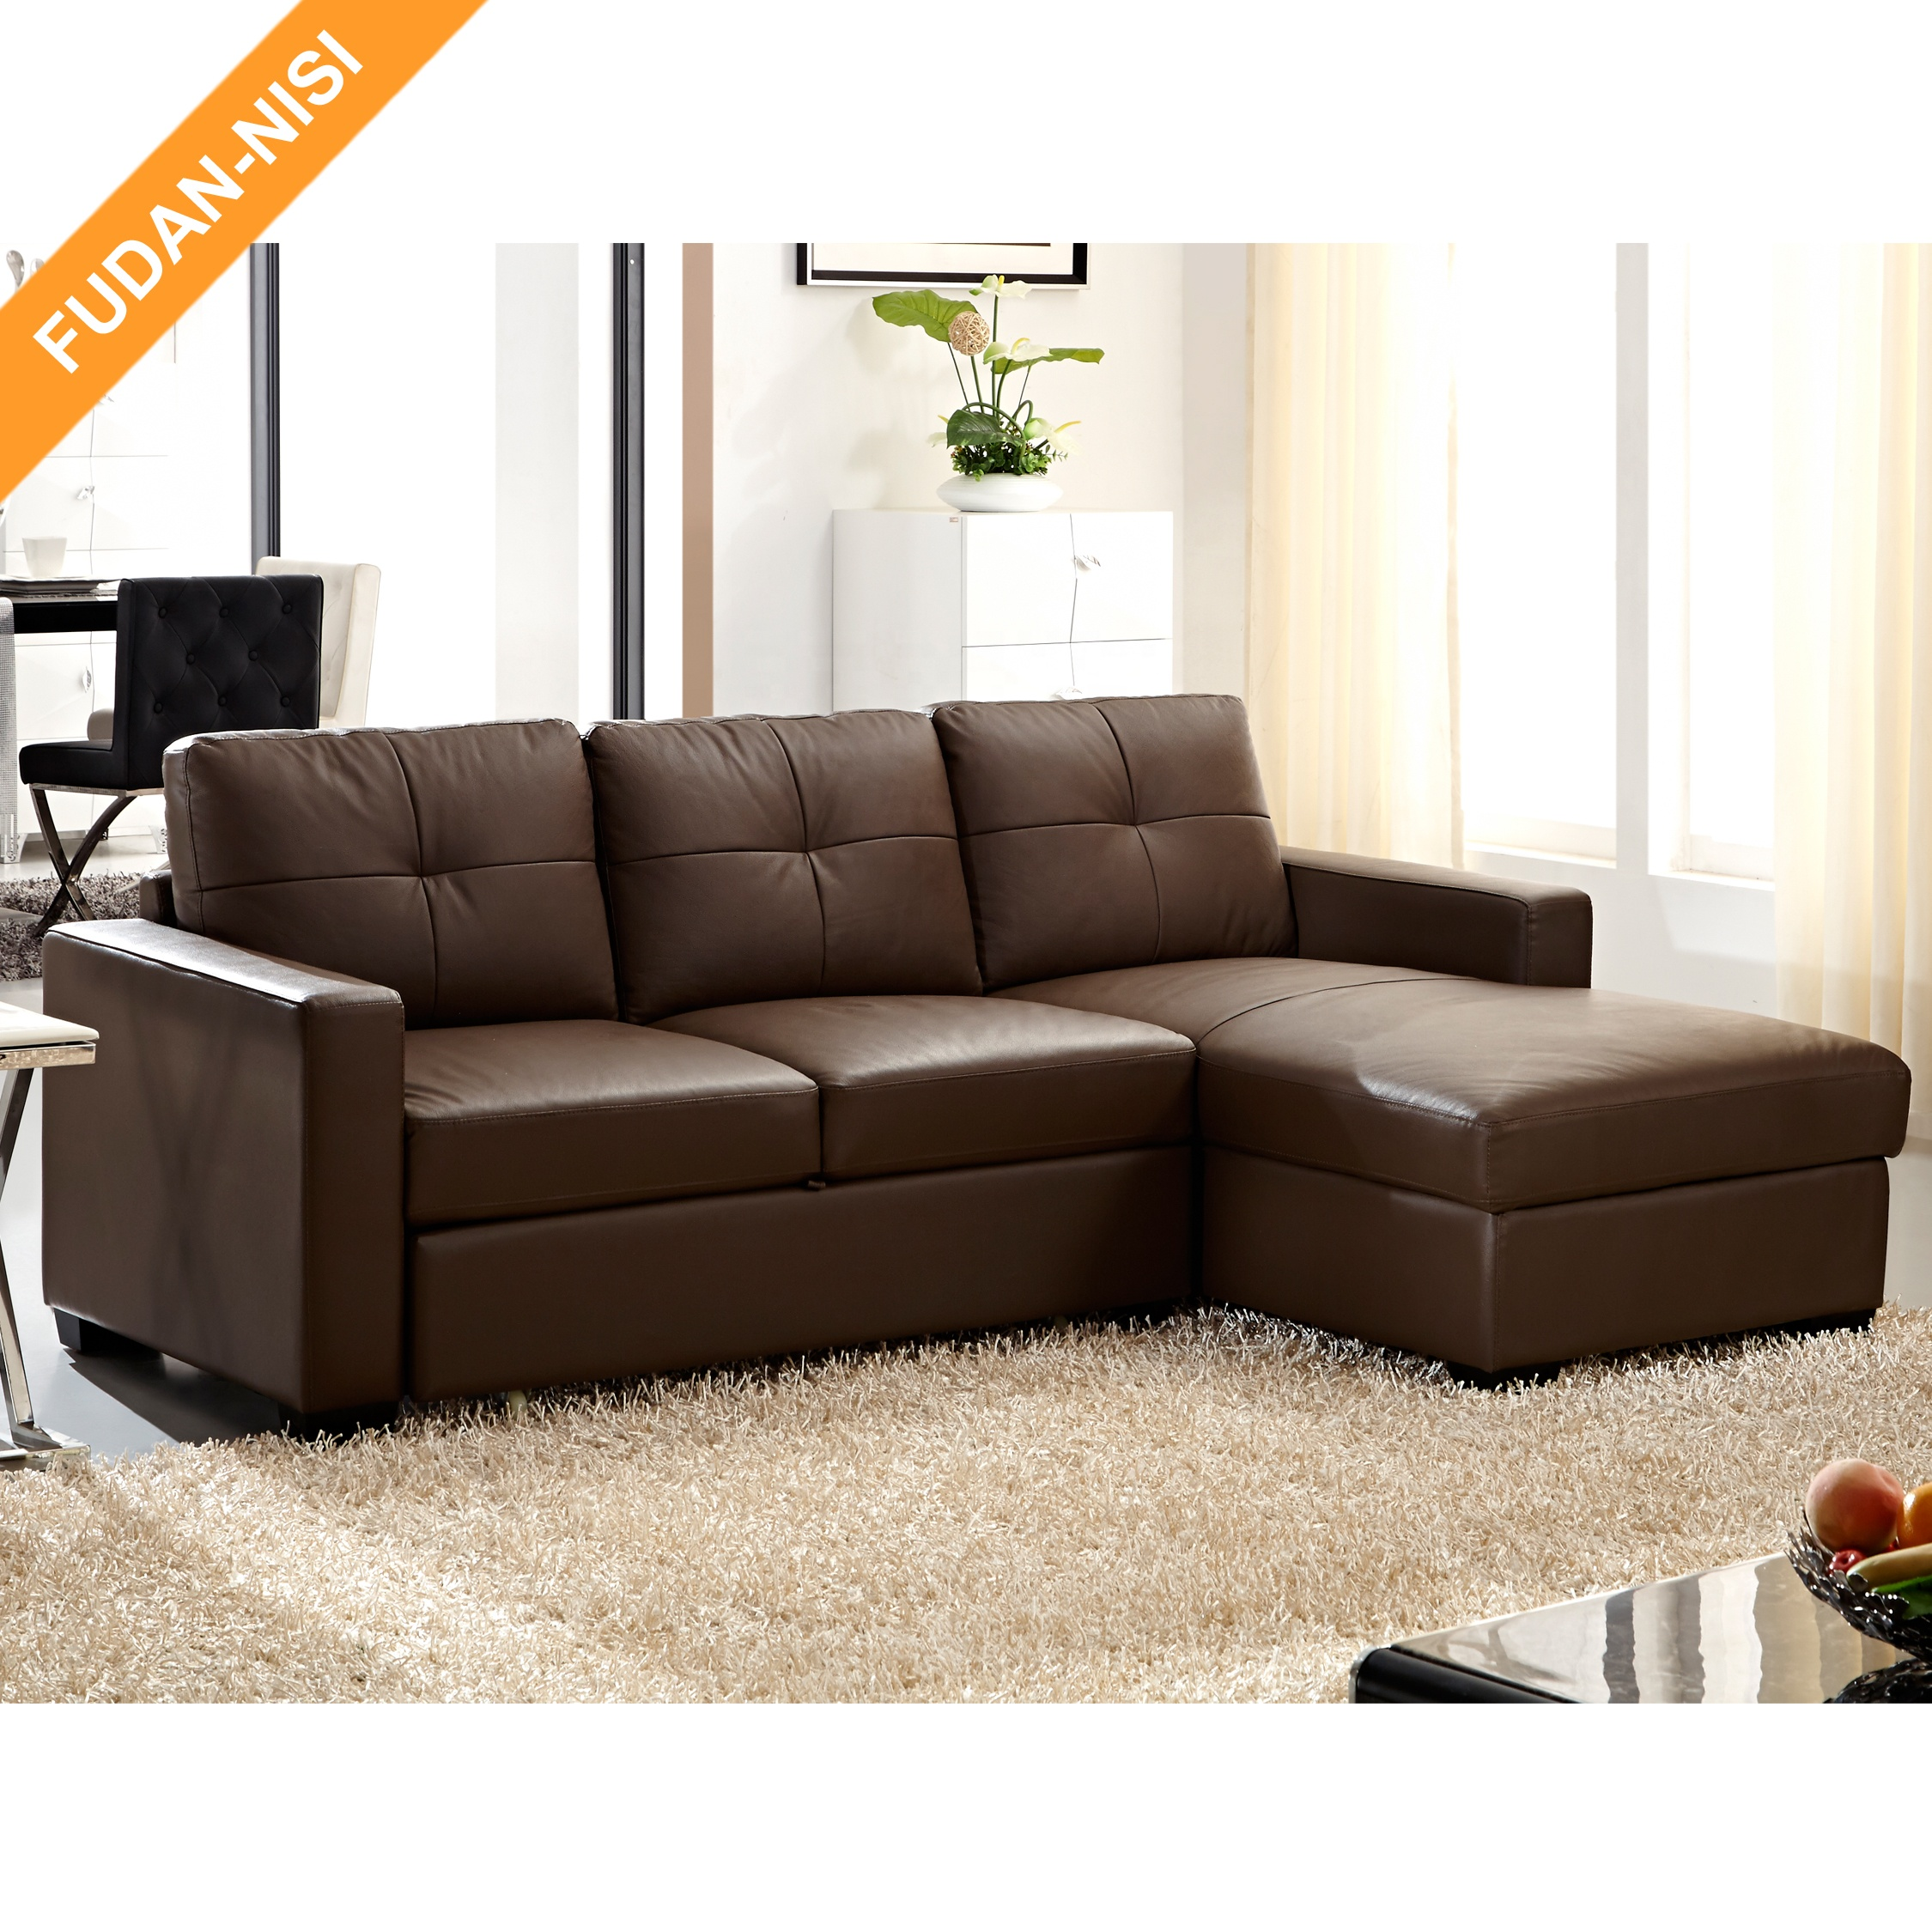 L Shape Small Sofa Bed With Storage Chaise